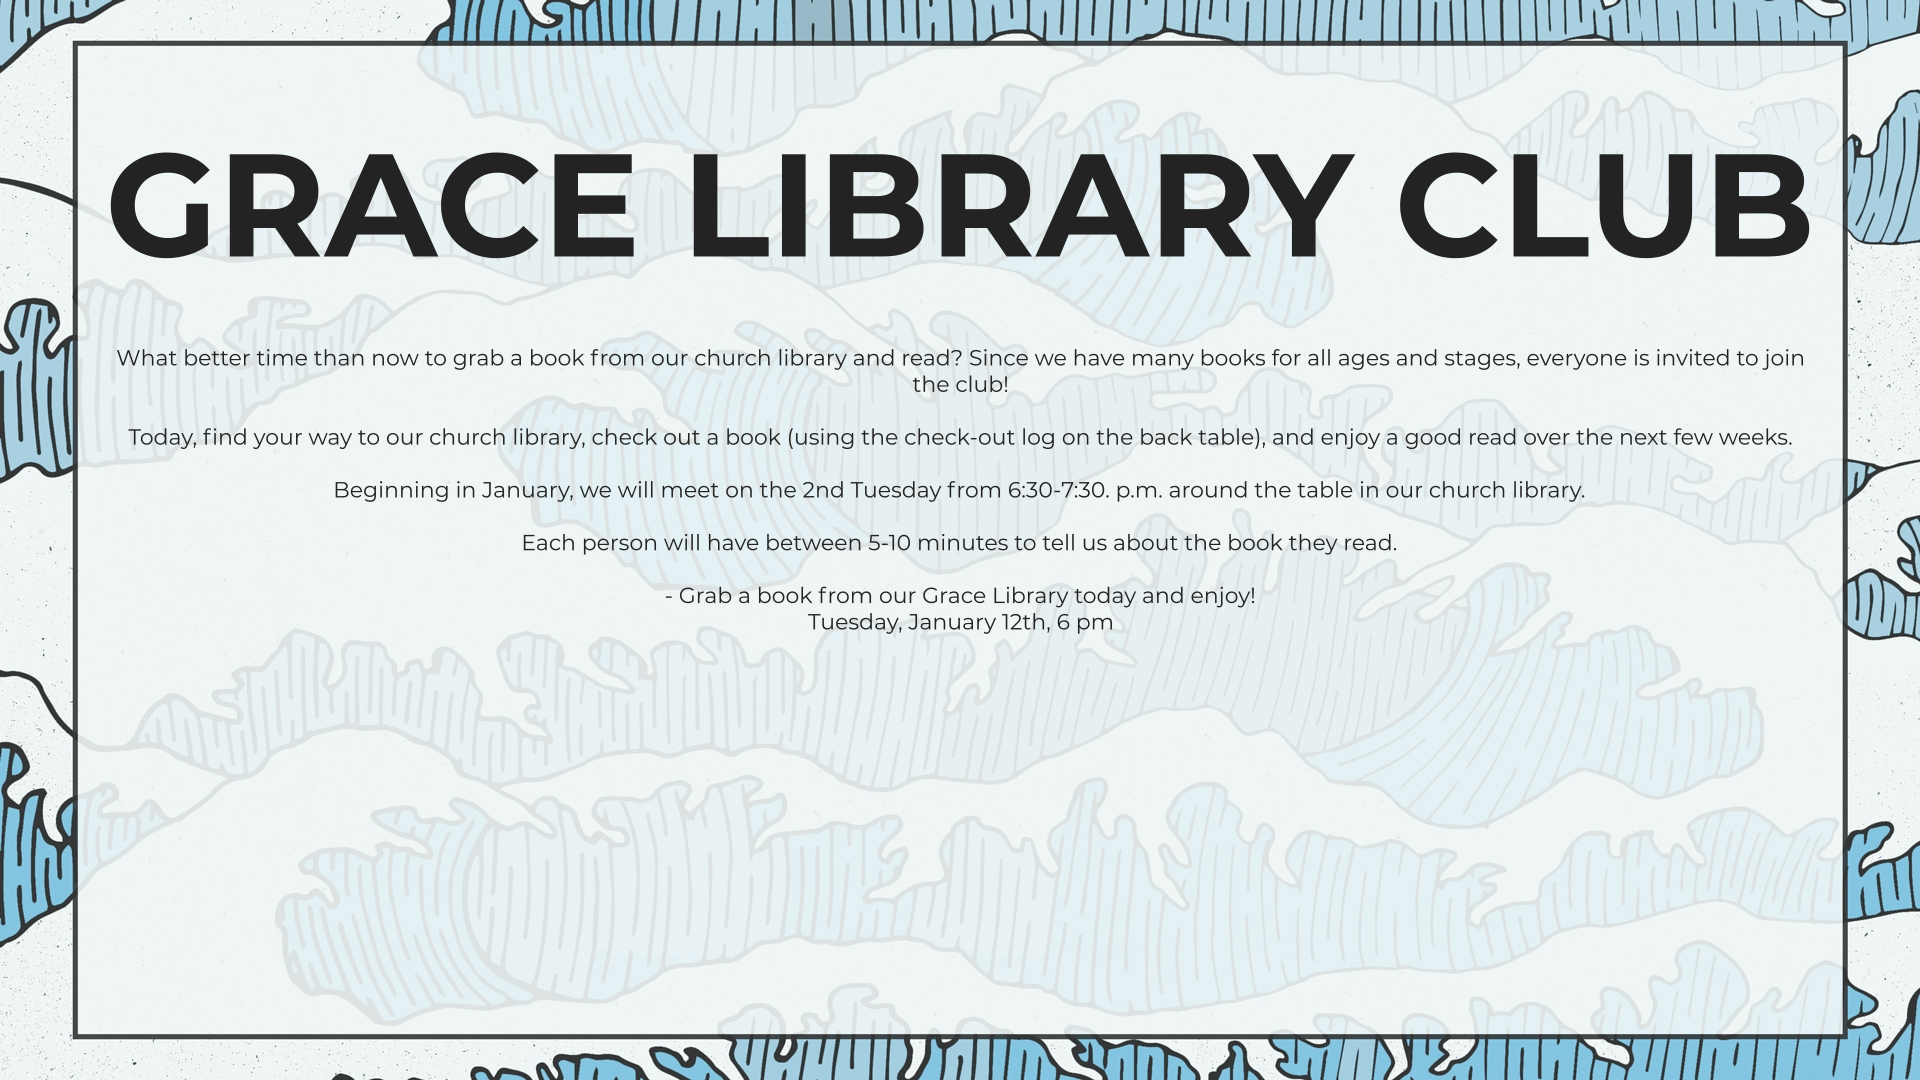 Grace Library Club